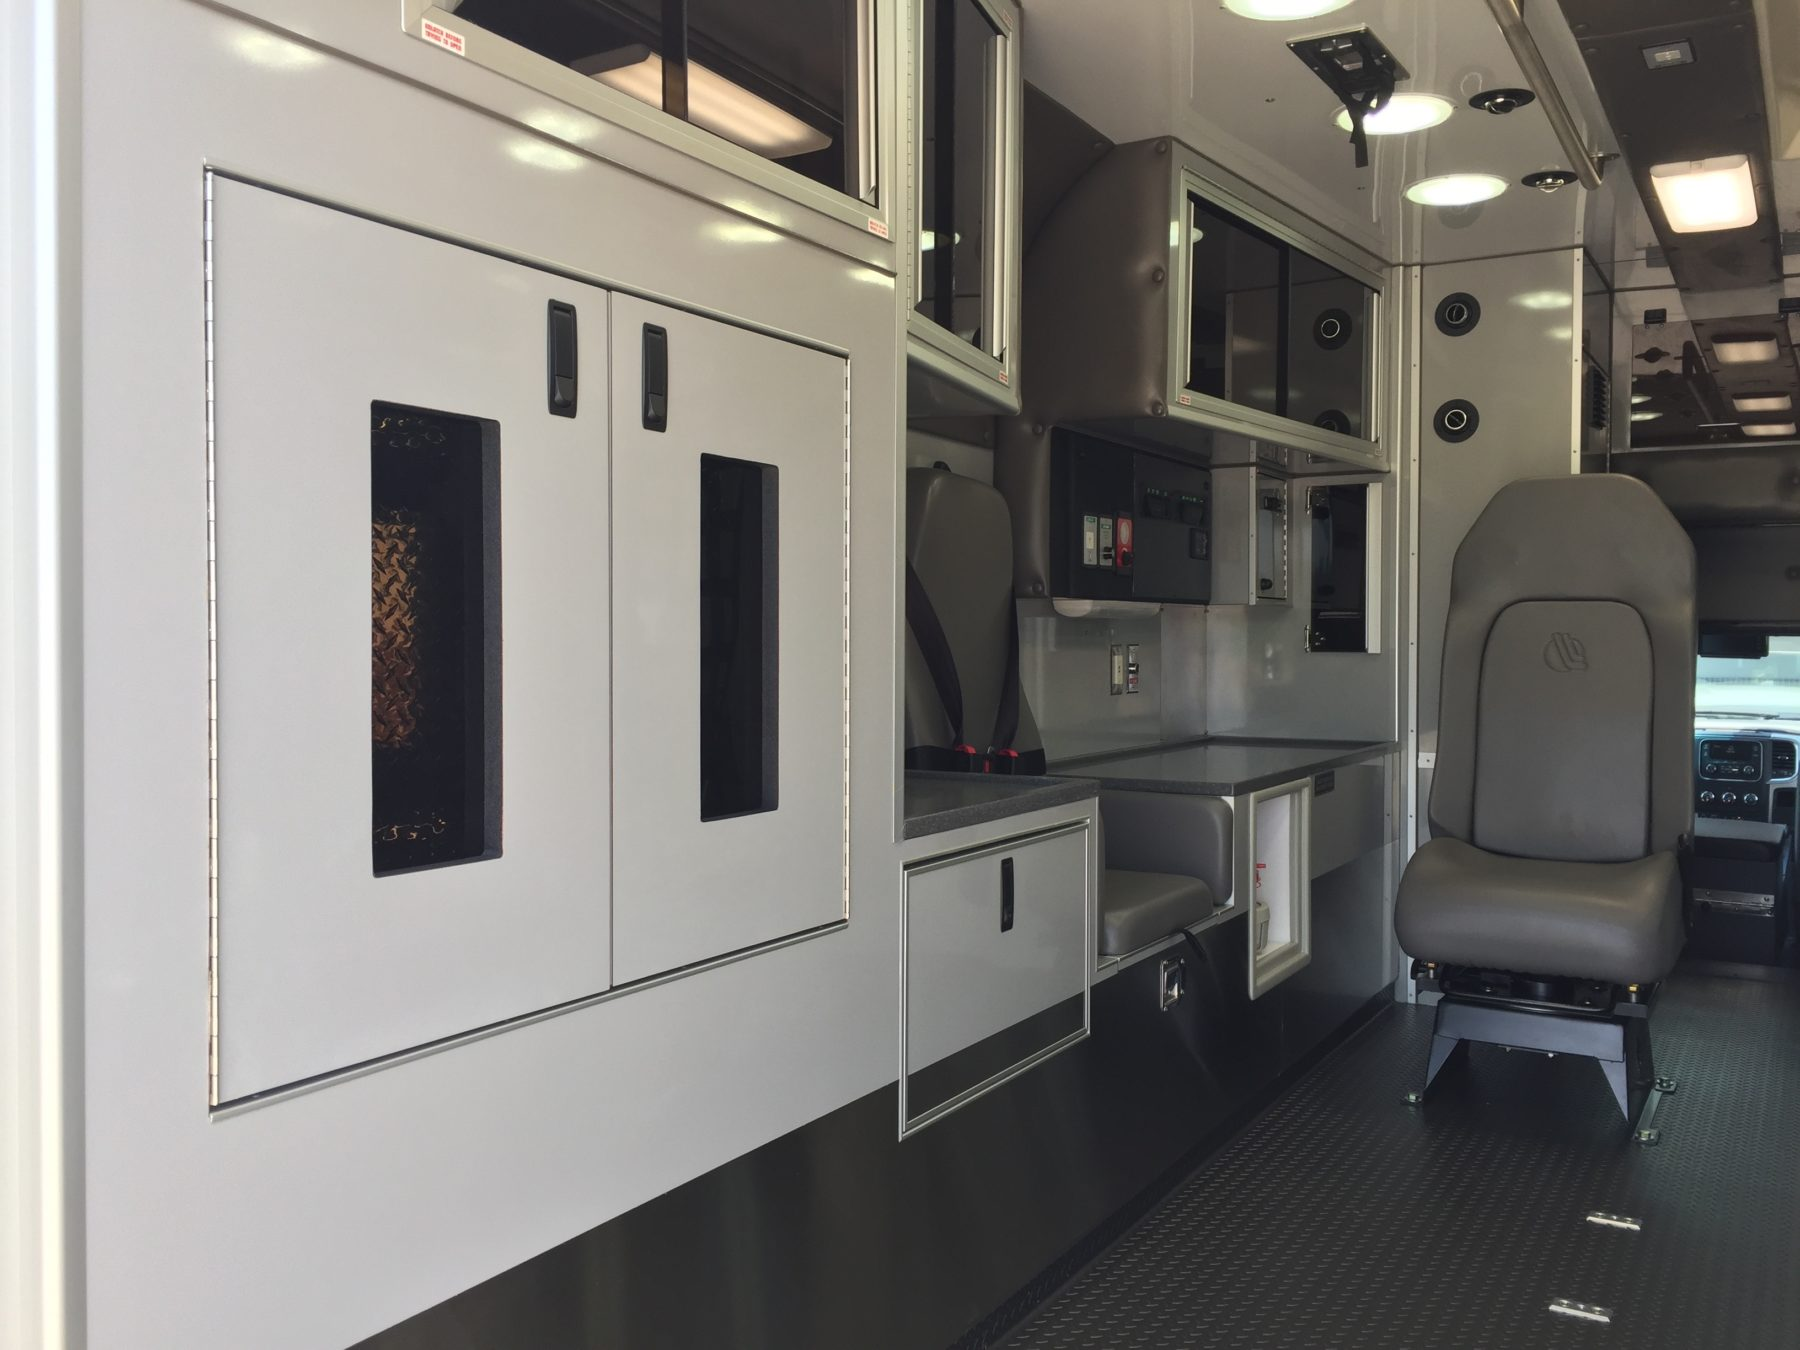 2017 Ram 4500 4x4 Heavy Duty Ambulance For Sale – Picture 13